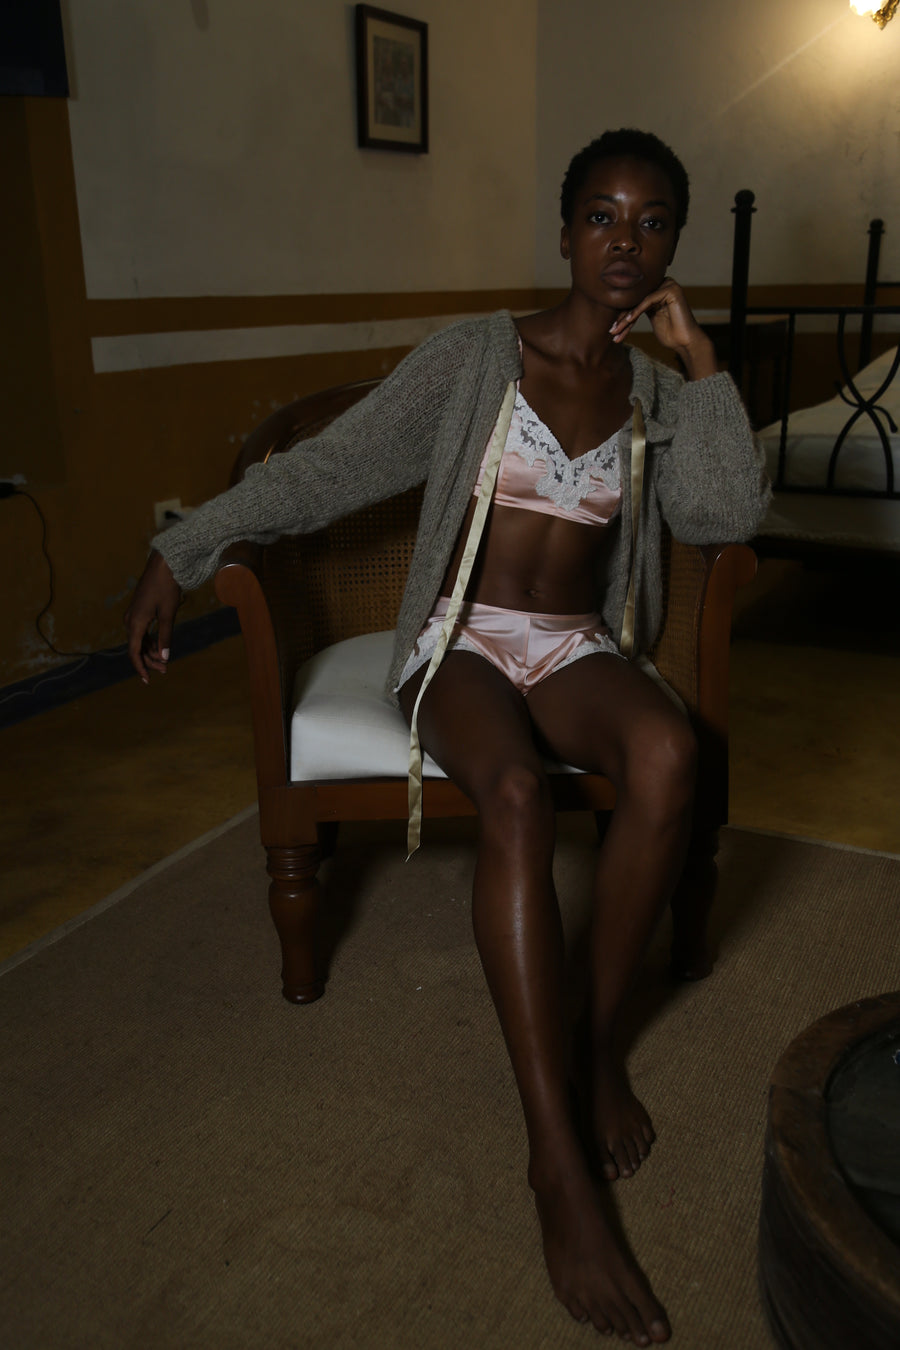 This is a photo of a woman sitting in a chair, she is wearing a knit cardigan on top of a pale pink silk bralette and shorts.